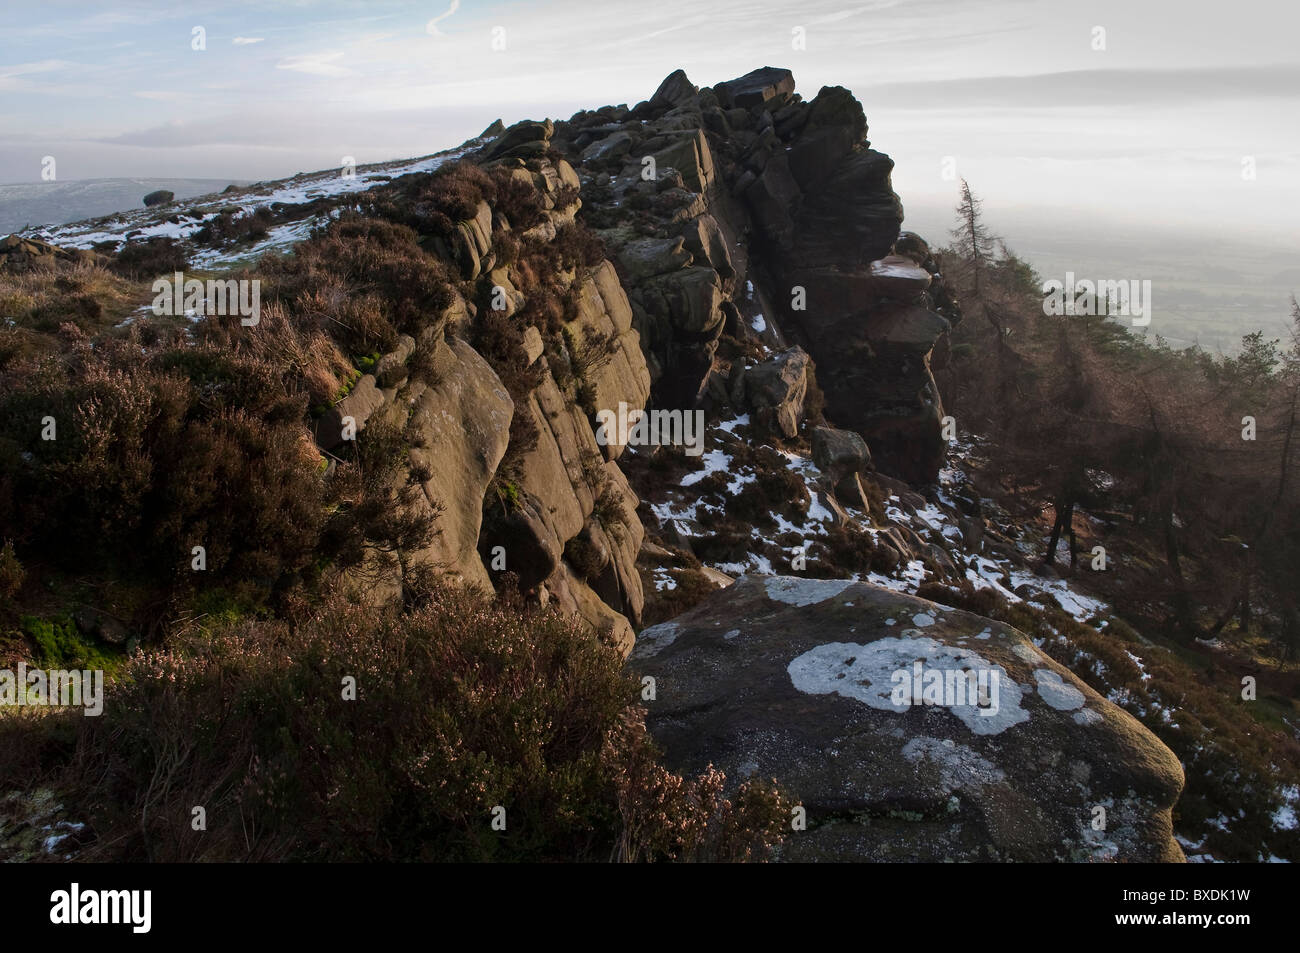 The gritstone escarpment of The Roaches in winter, Staffordshire Moorlands - Stock Image